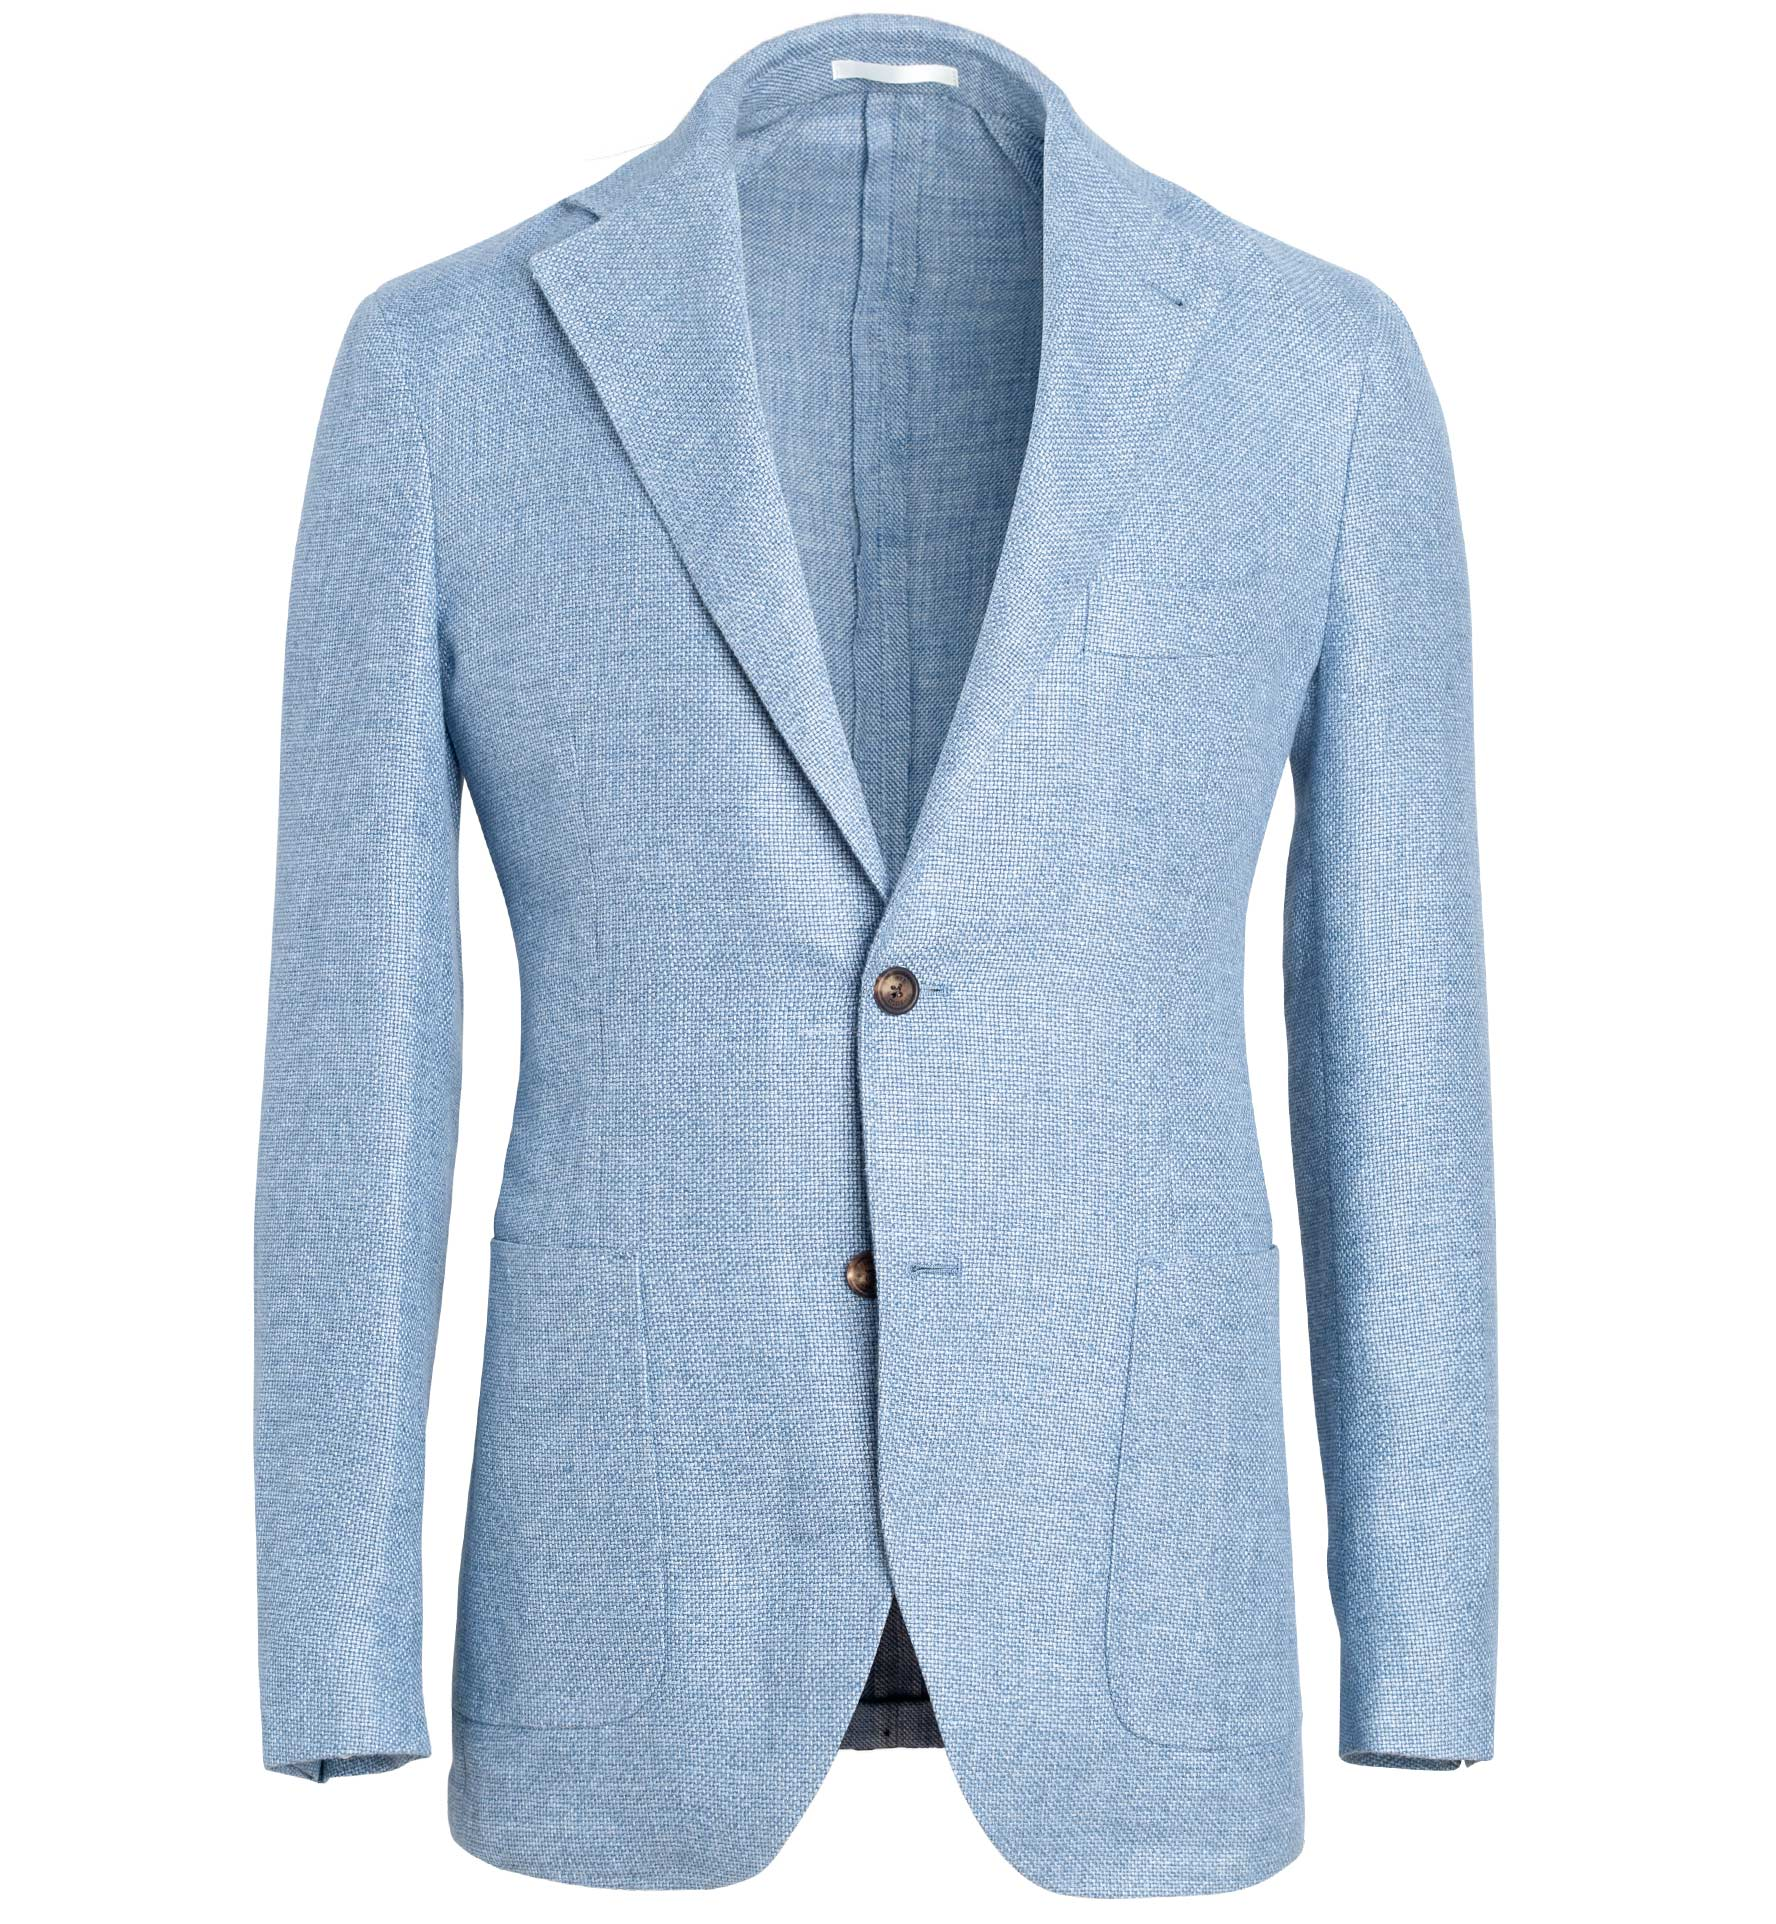 Zoom Image of Waverly Light Blue Hemp and Wool Basketweave Jacket